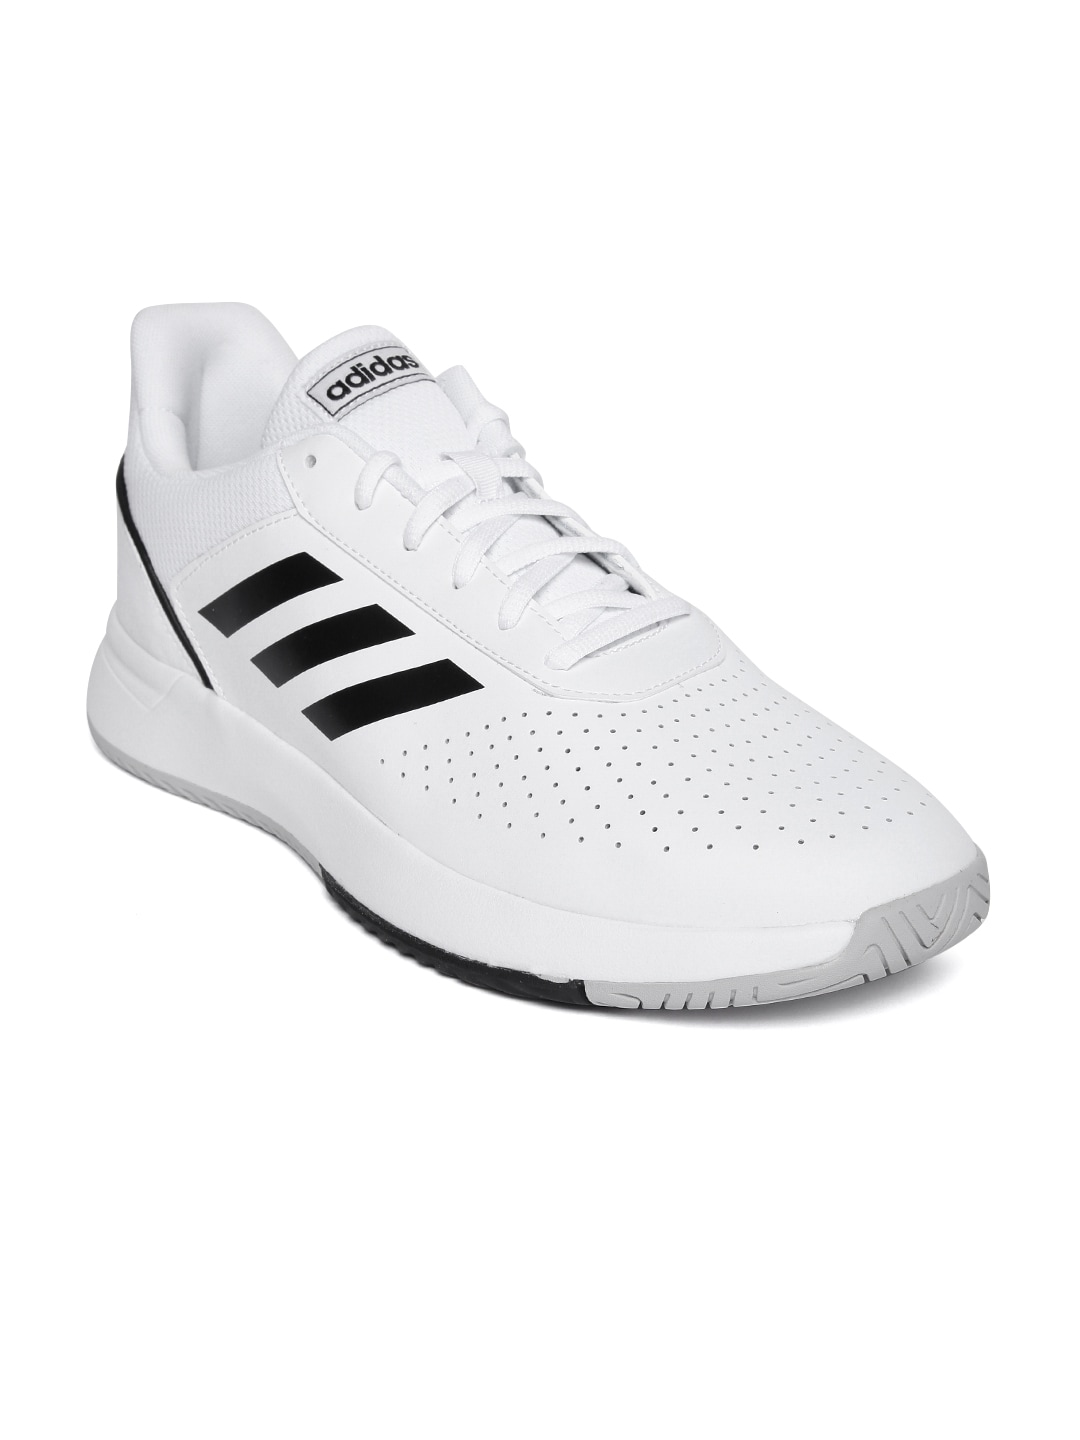 c39c8b3965fb7 Adidas Football Shoes - Buy Adidas Football Shoes for Men Online in India